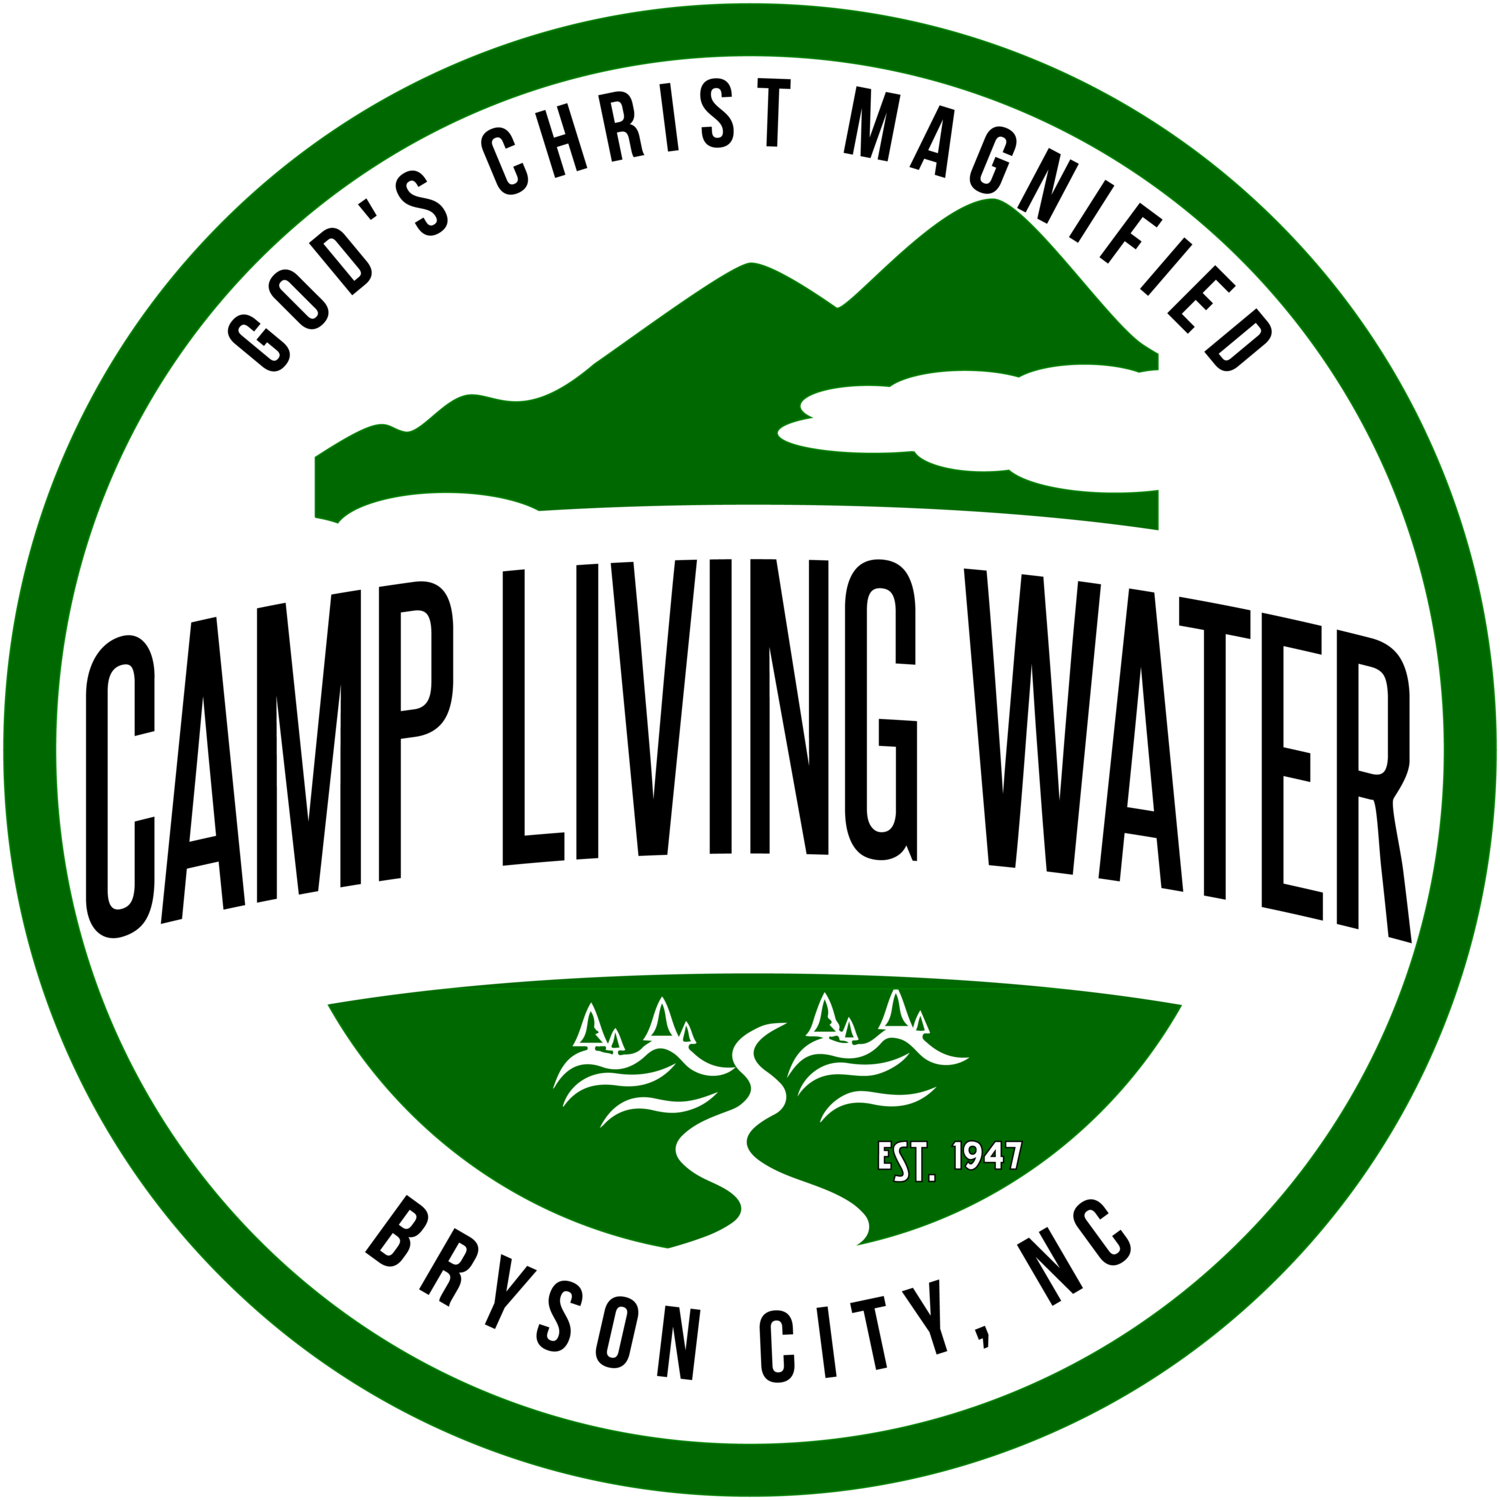 Camp Living Water, Bryson City, NC